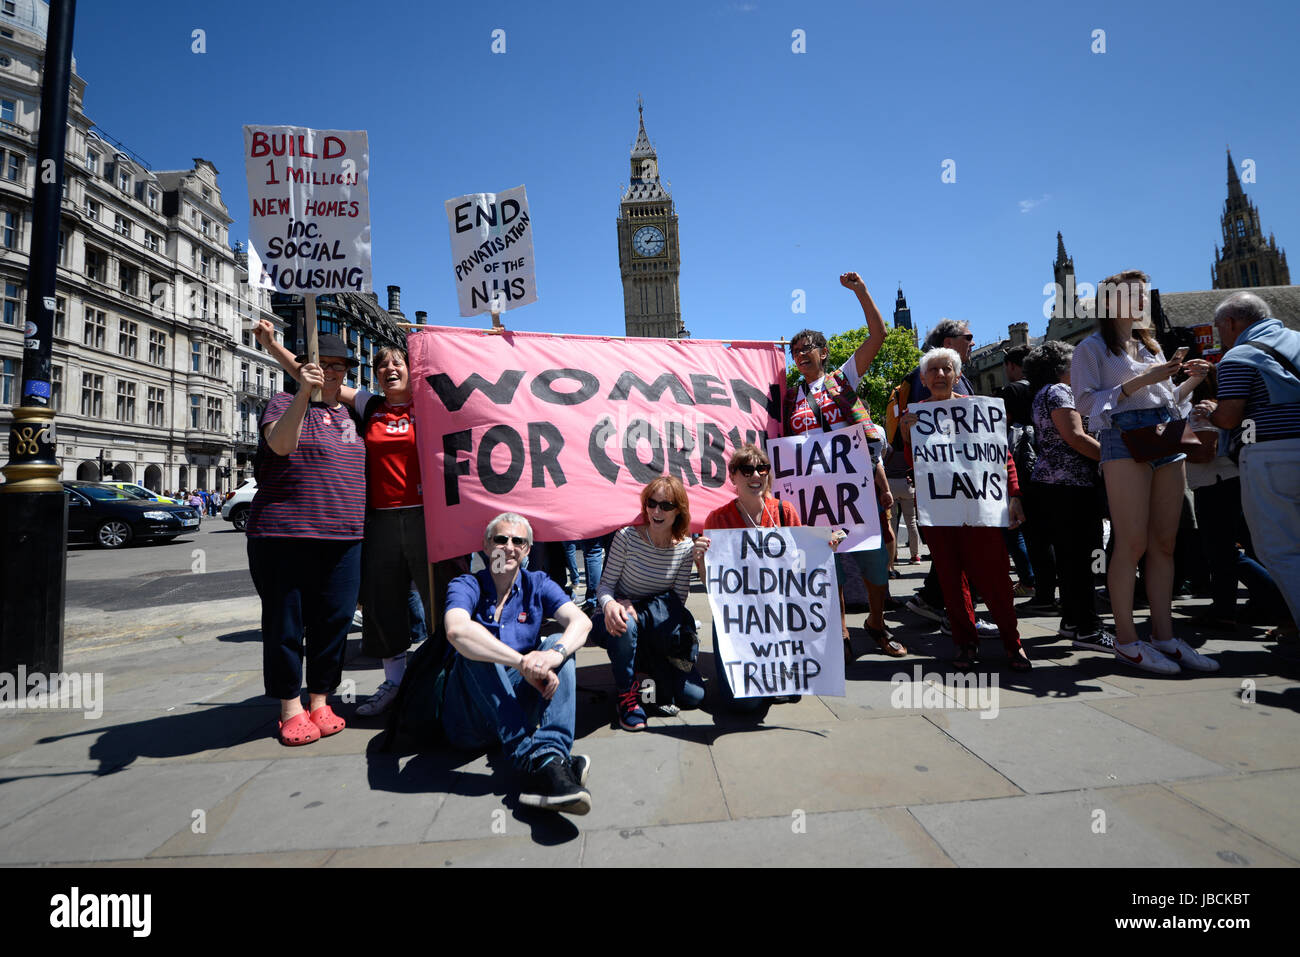 Protest against DUP / Tory alliance outside Parliament and march to Downing Street, London. Space for copy - Stock Image